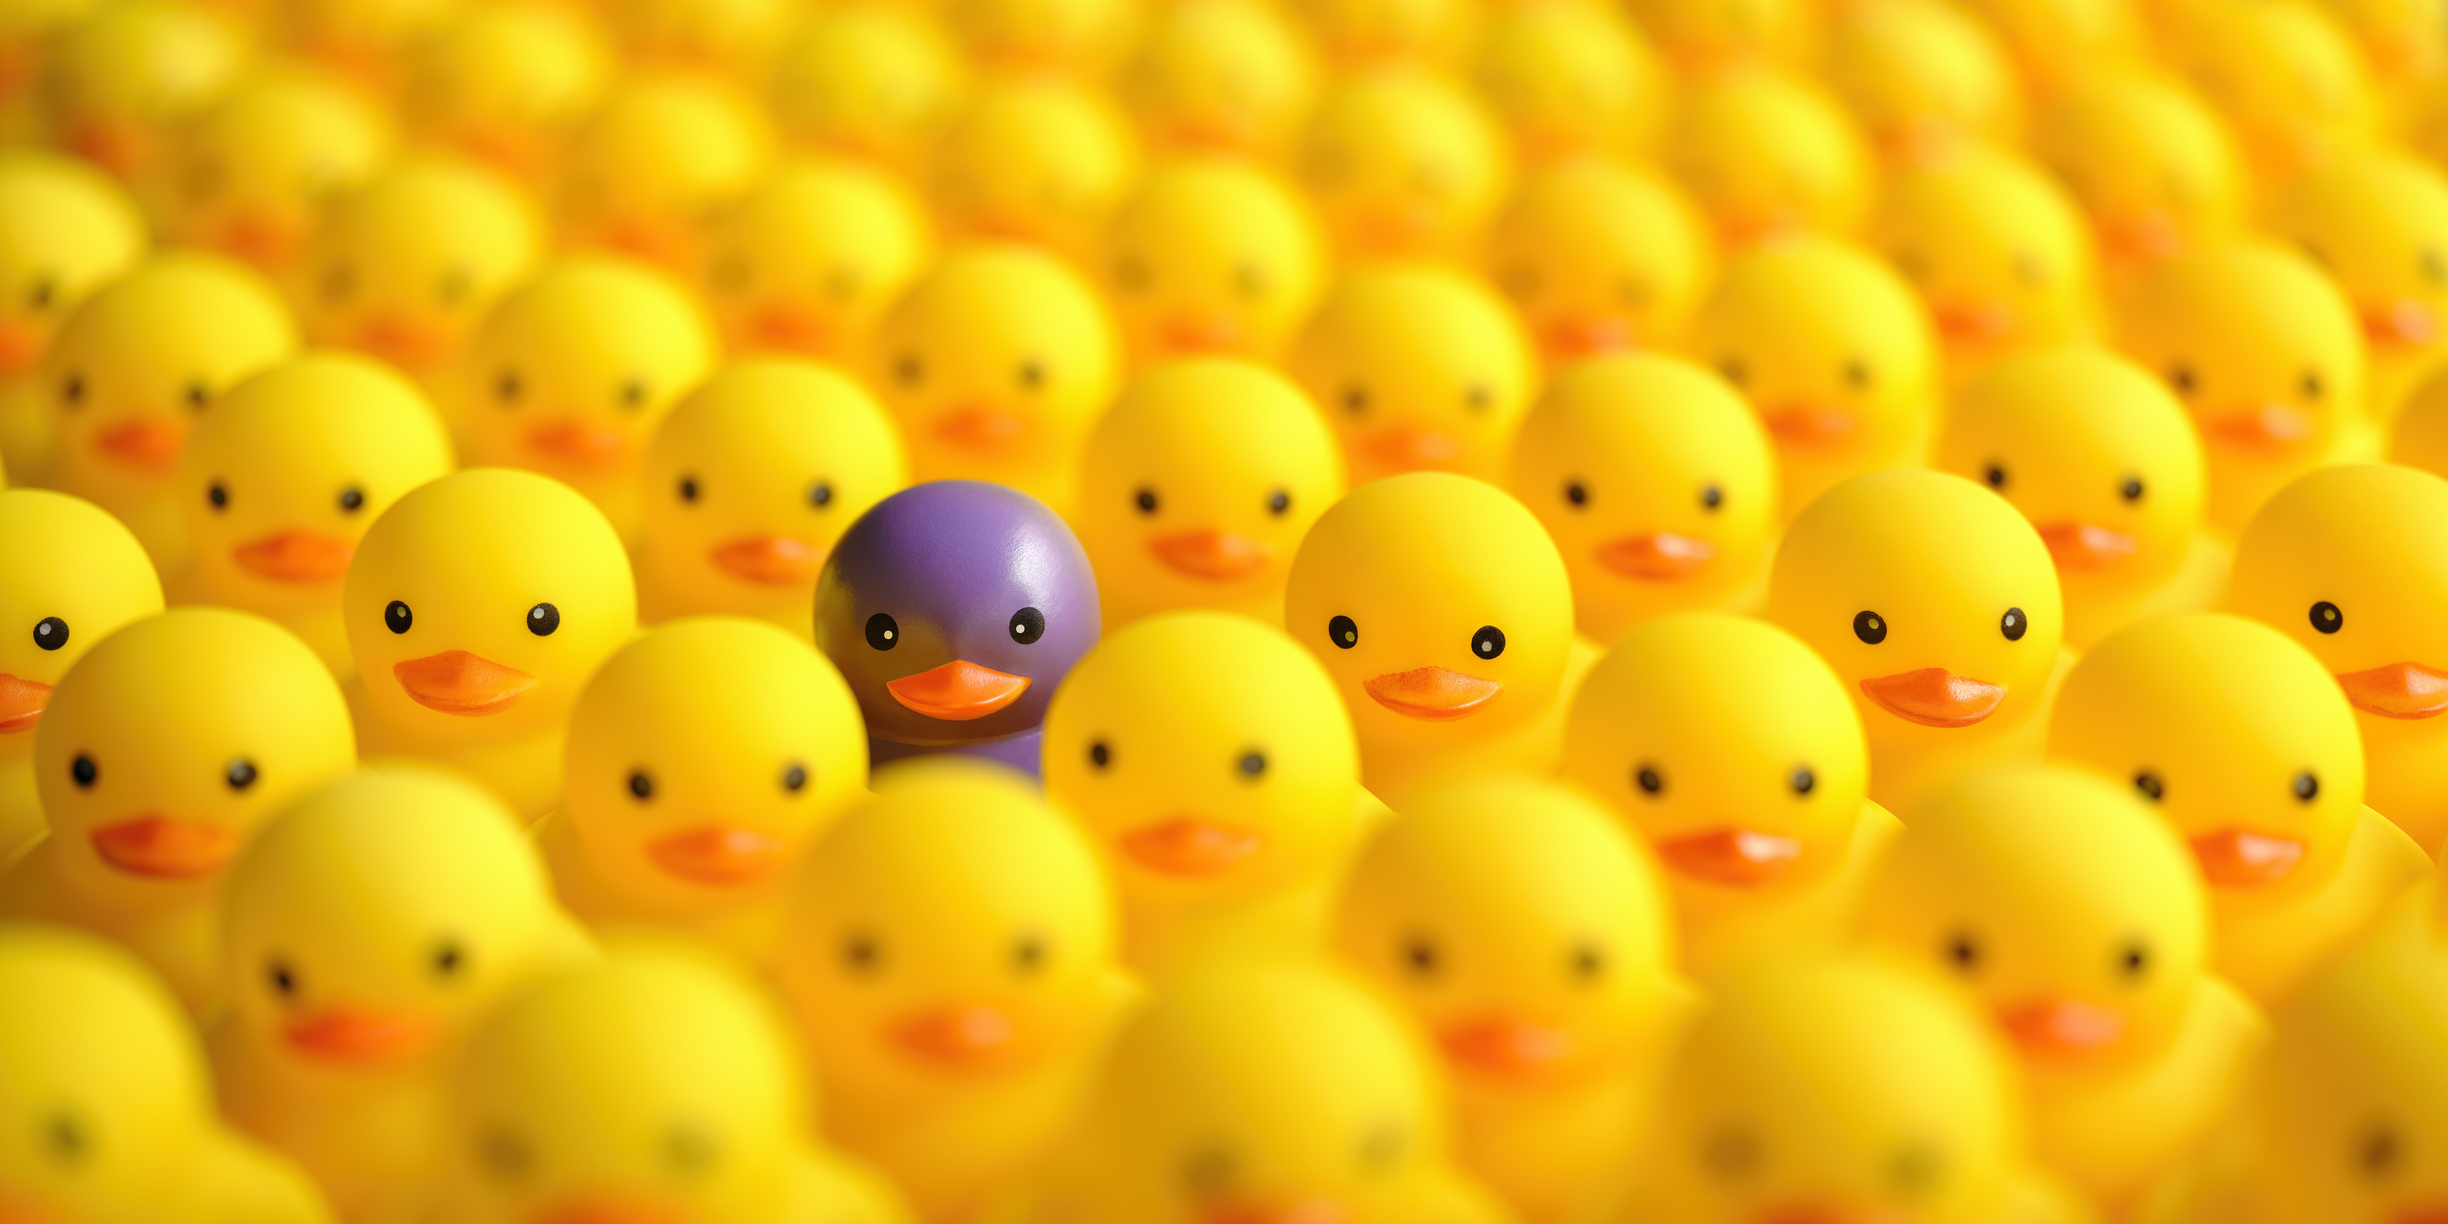 purple duck standing out from a sea of yellow ducks